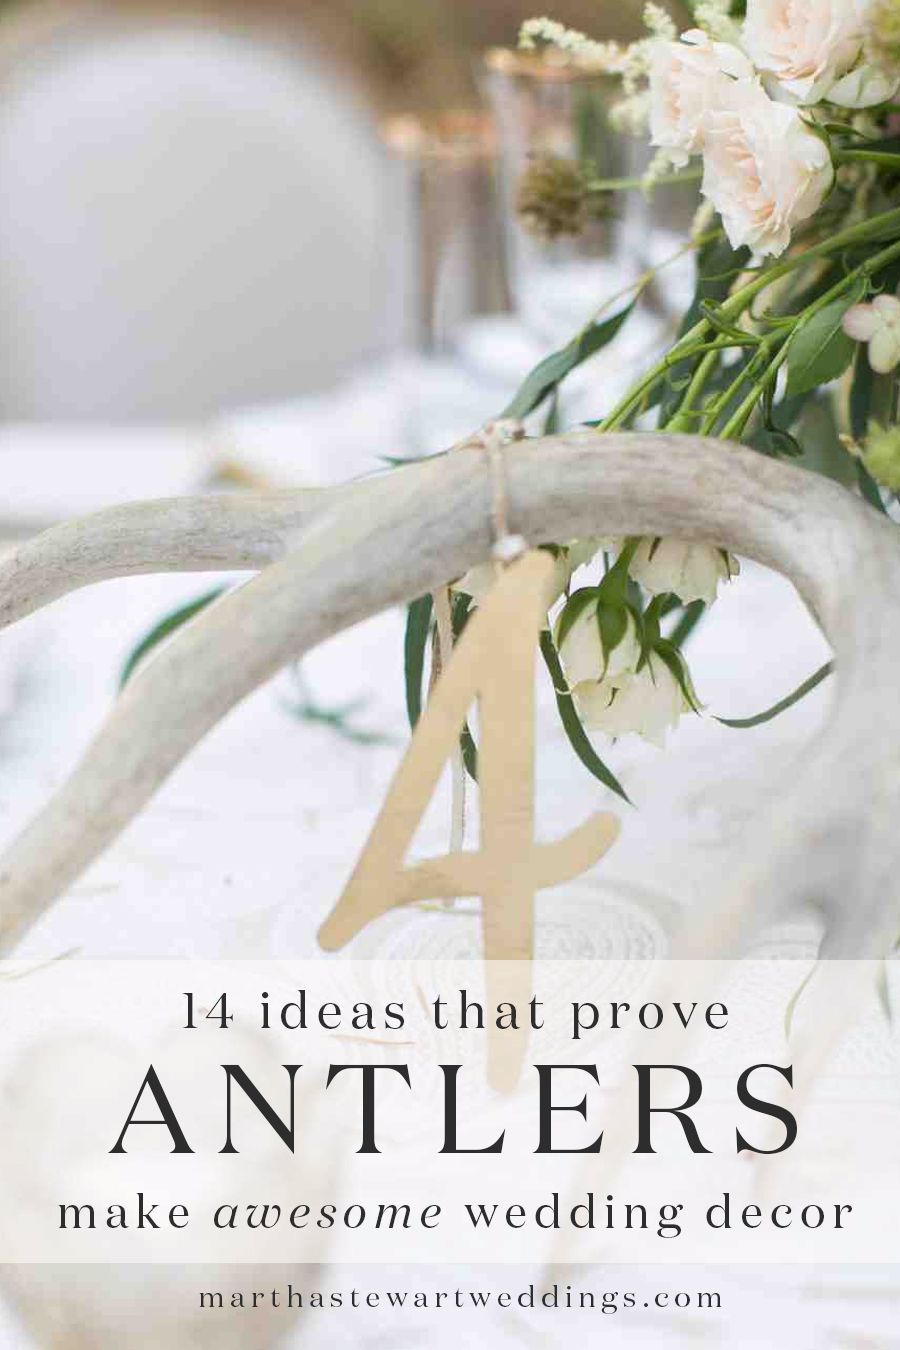 14 Ideas That Prove Antlers Make Awesome Wedding Décor | Pinterest ...